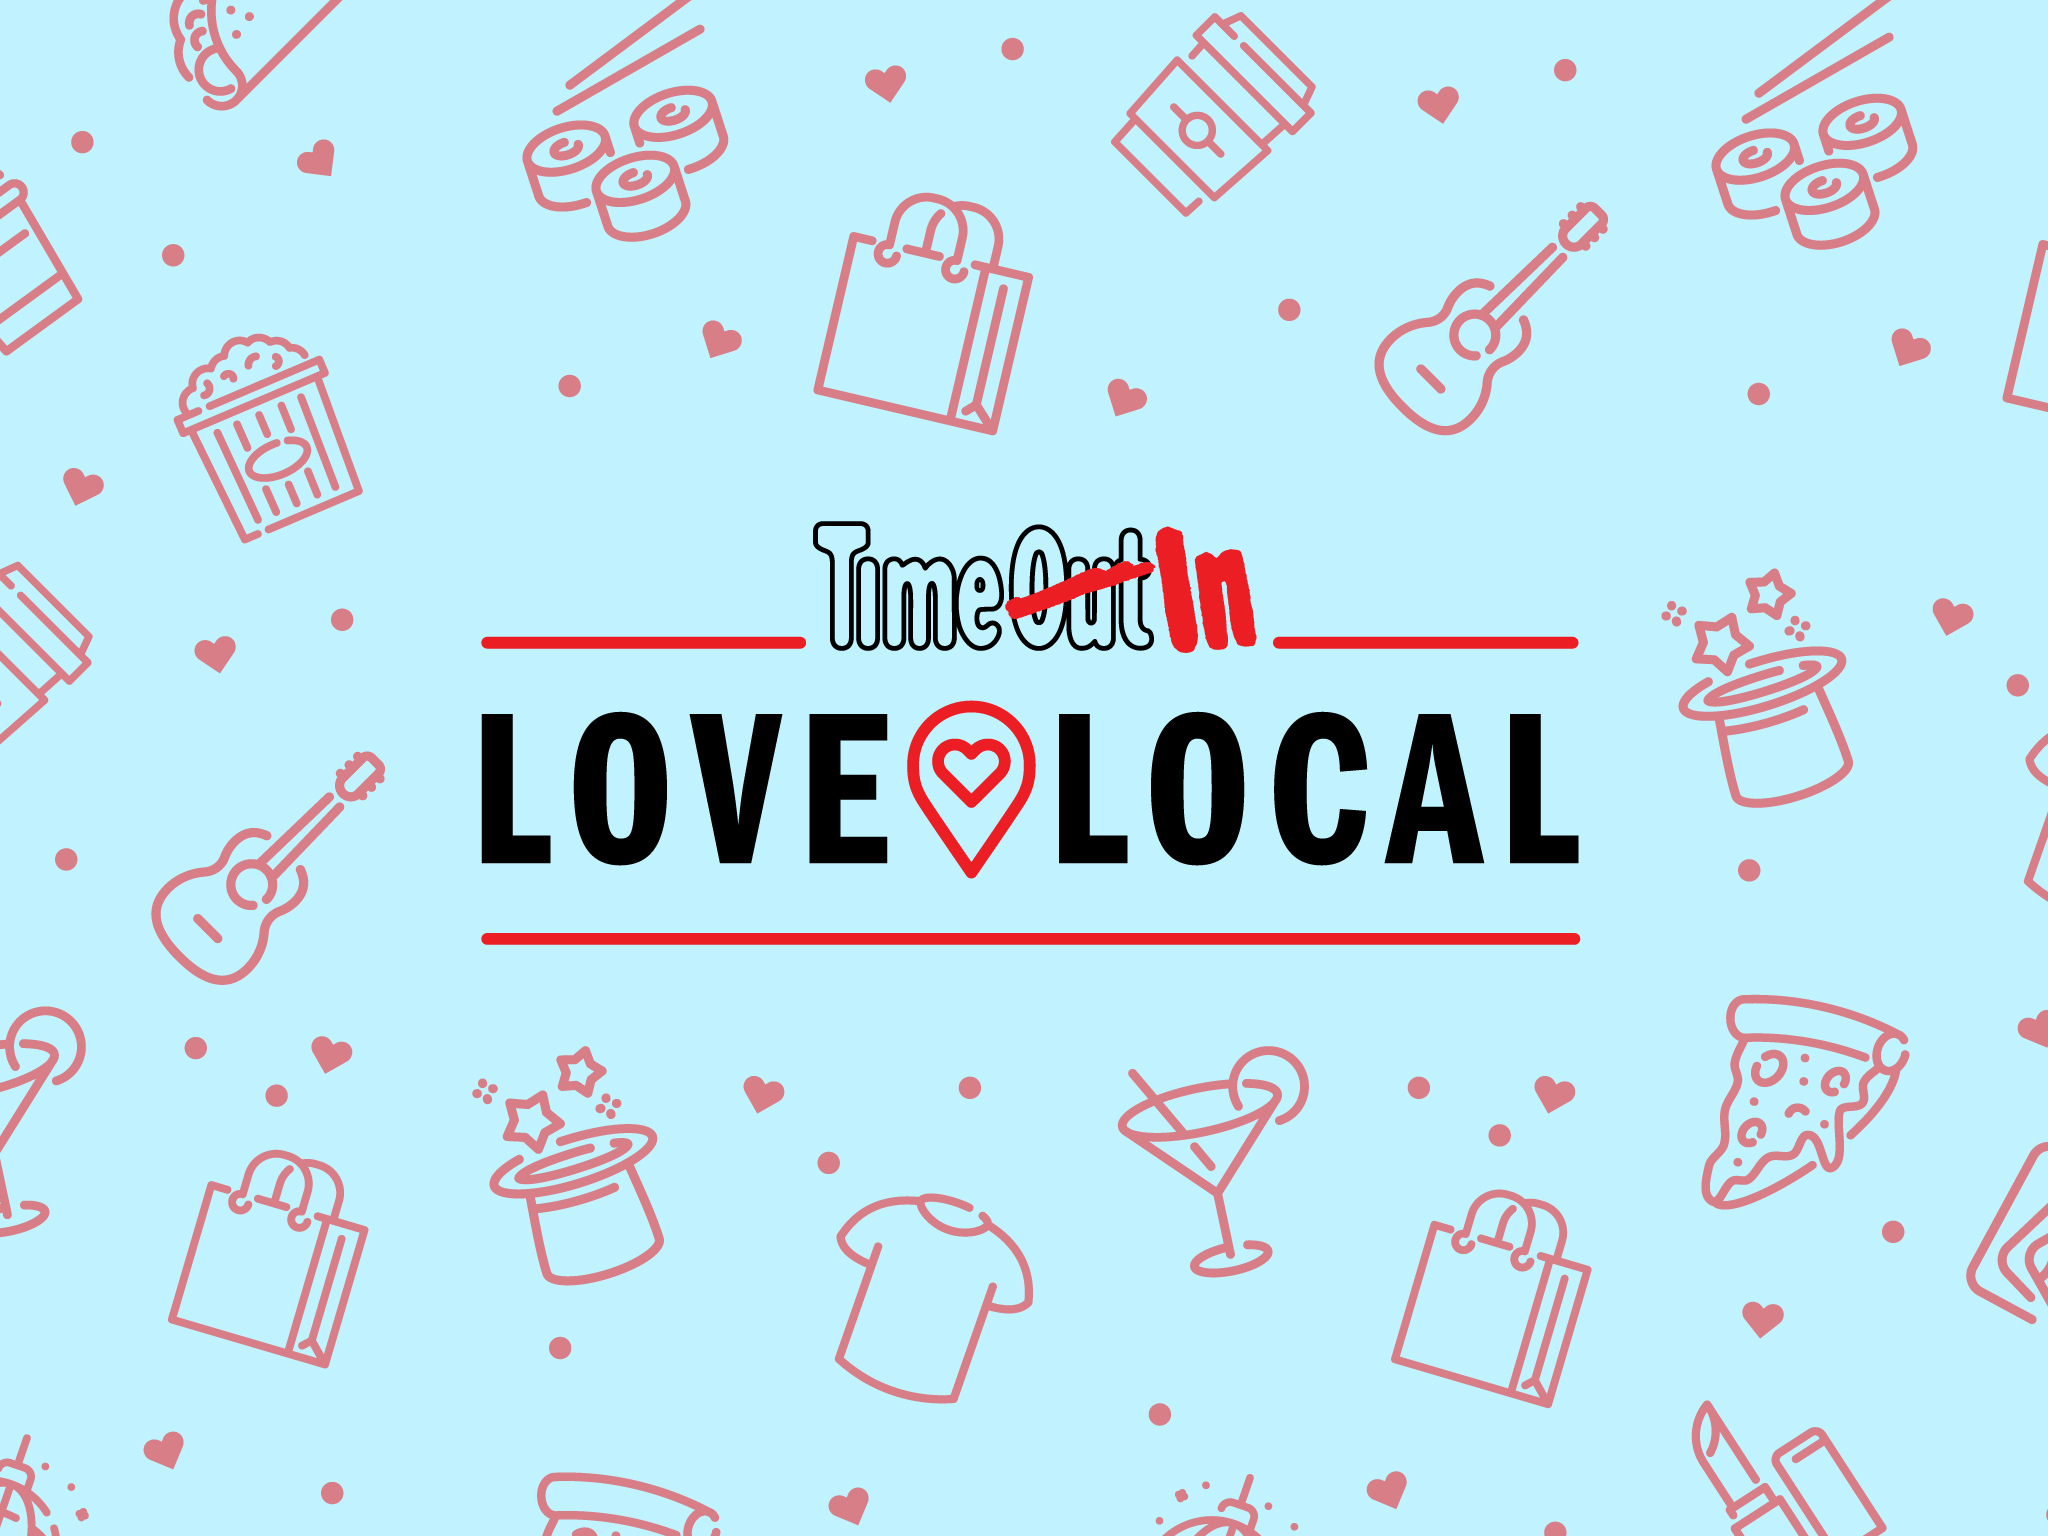 love local, lovelocal